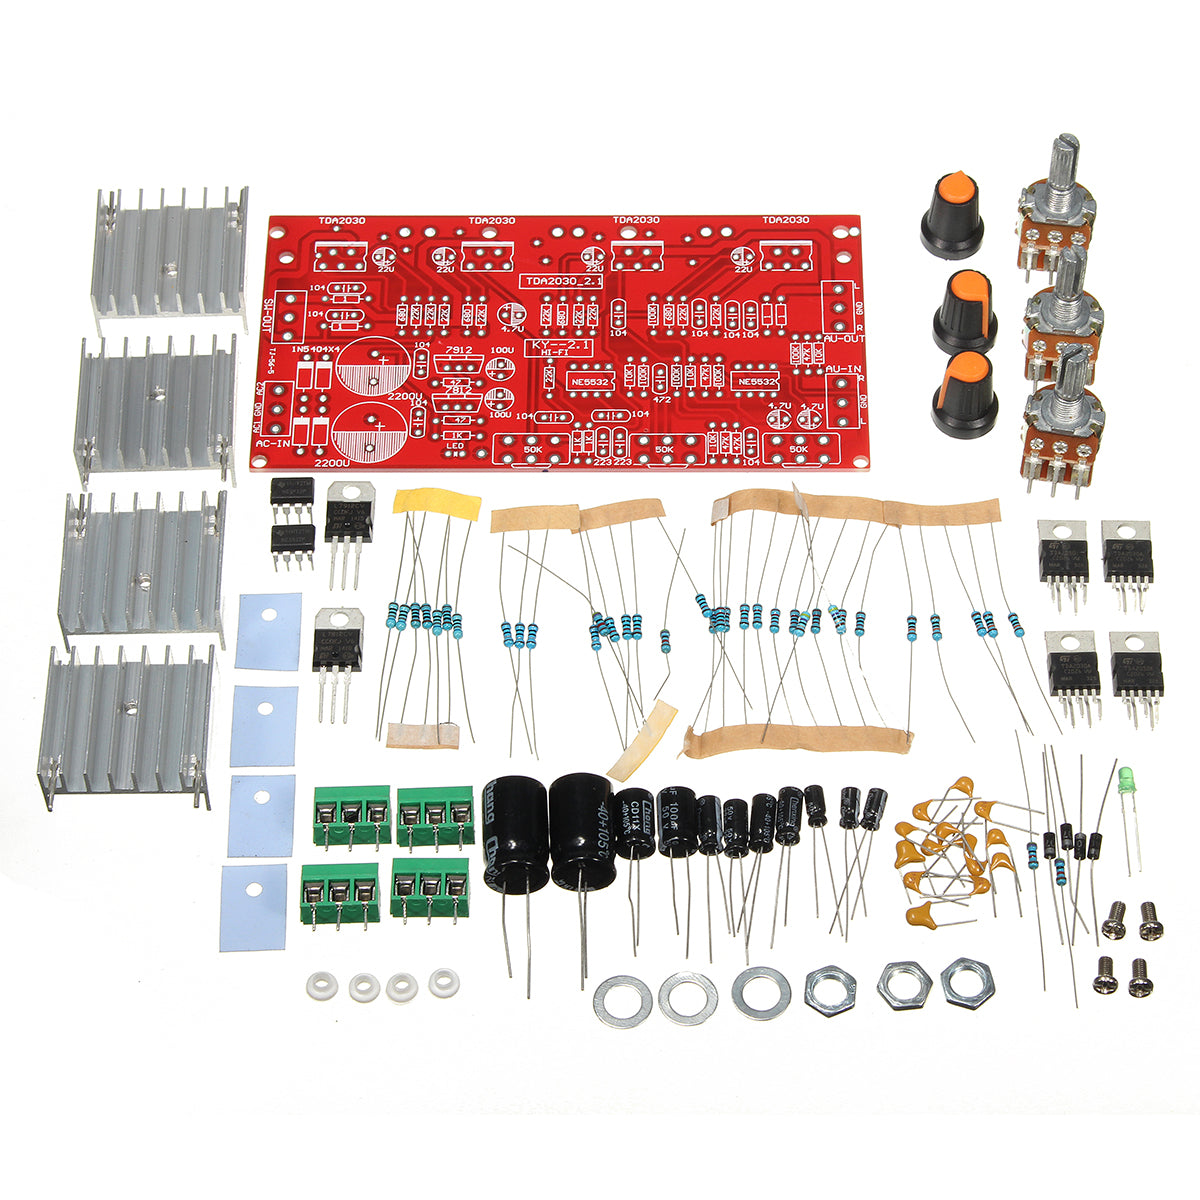 12v Boost To 32vdc 180w Power Supply Inverter Tl494 Irfz44n For Details About Ka2284 Integrated Circuit Diy 30w Tda2030 Audio Amplifier Board Dual Tracks Subwoofer Kit